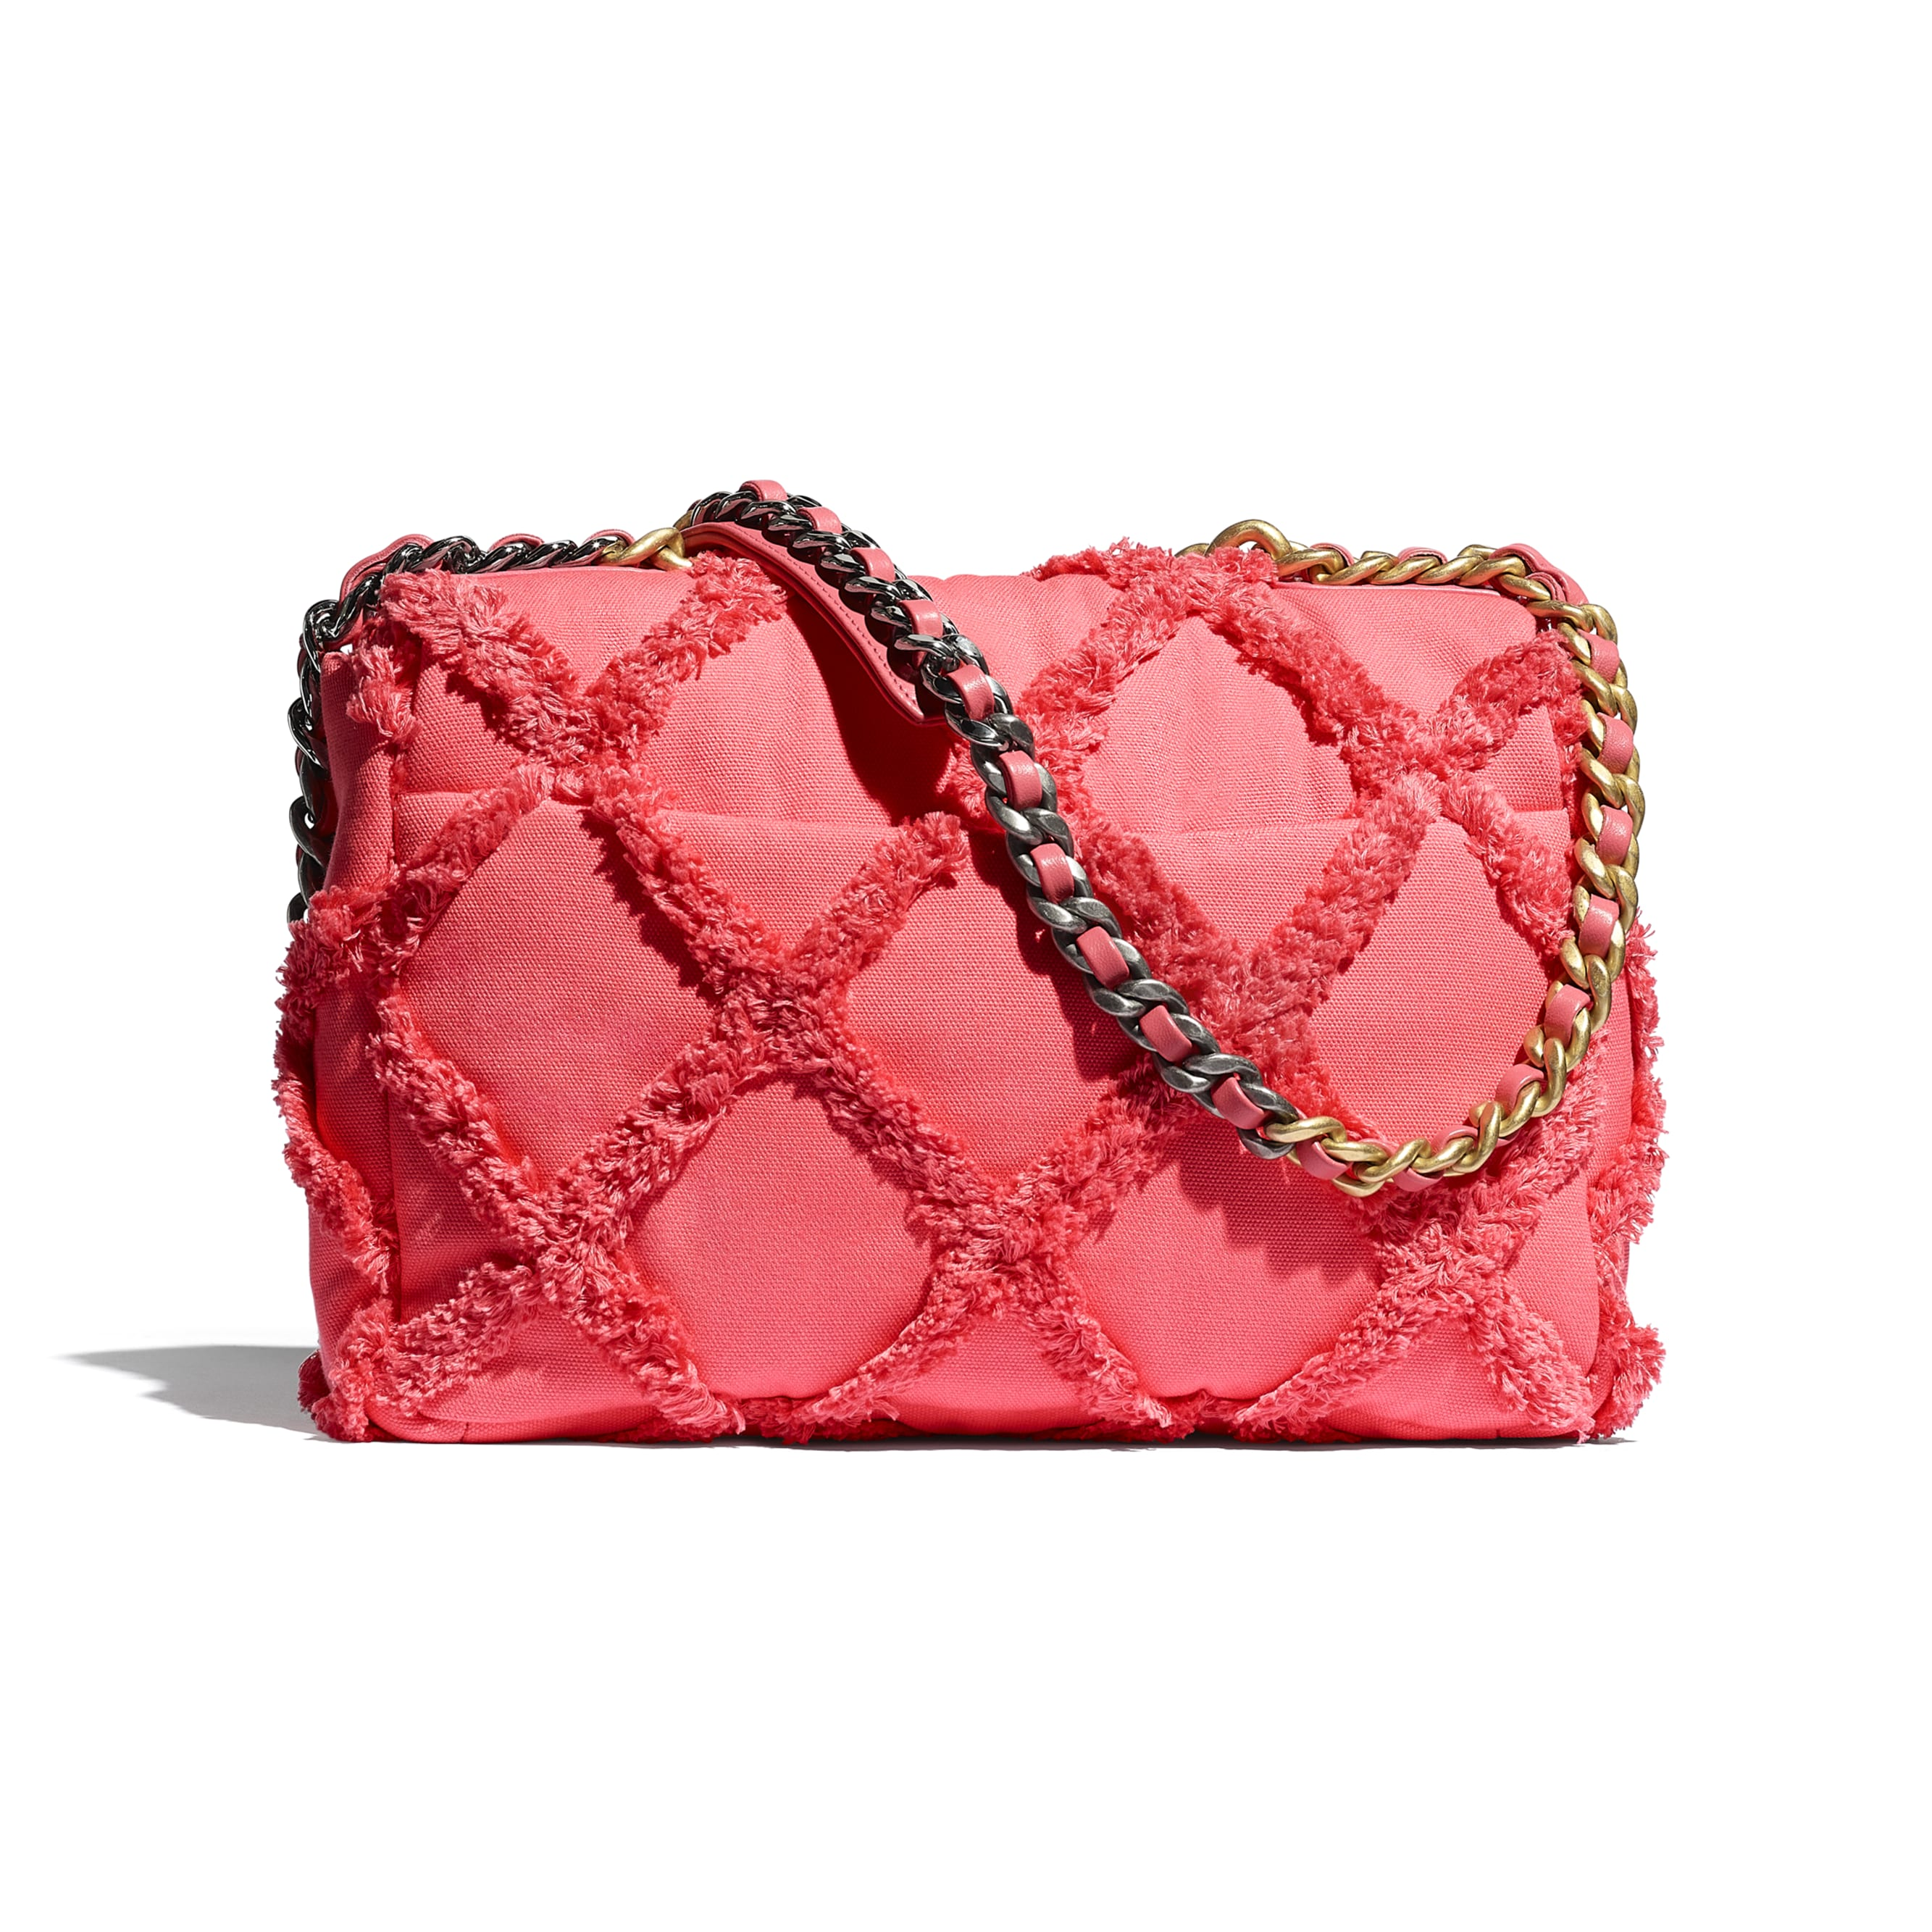 CHANEL 19 Large Flap Bag - Coral - Cotton Canvas, Calfskin, Gold-Tone, Silver-Tone & Ruthenium-Finish Metal - CHANEL - Alternative view - see standard sized version